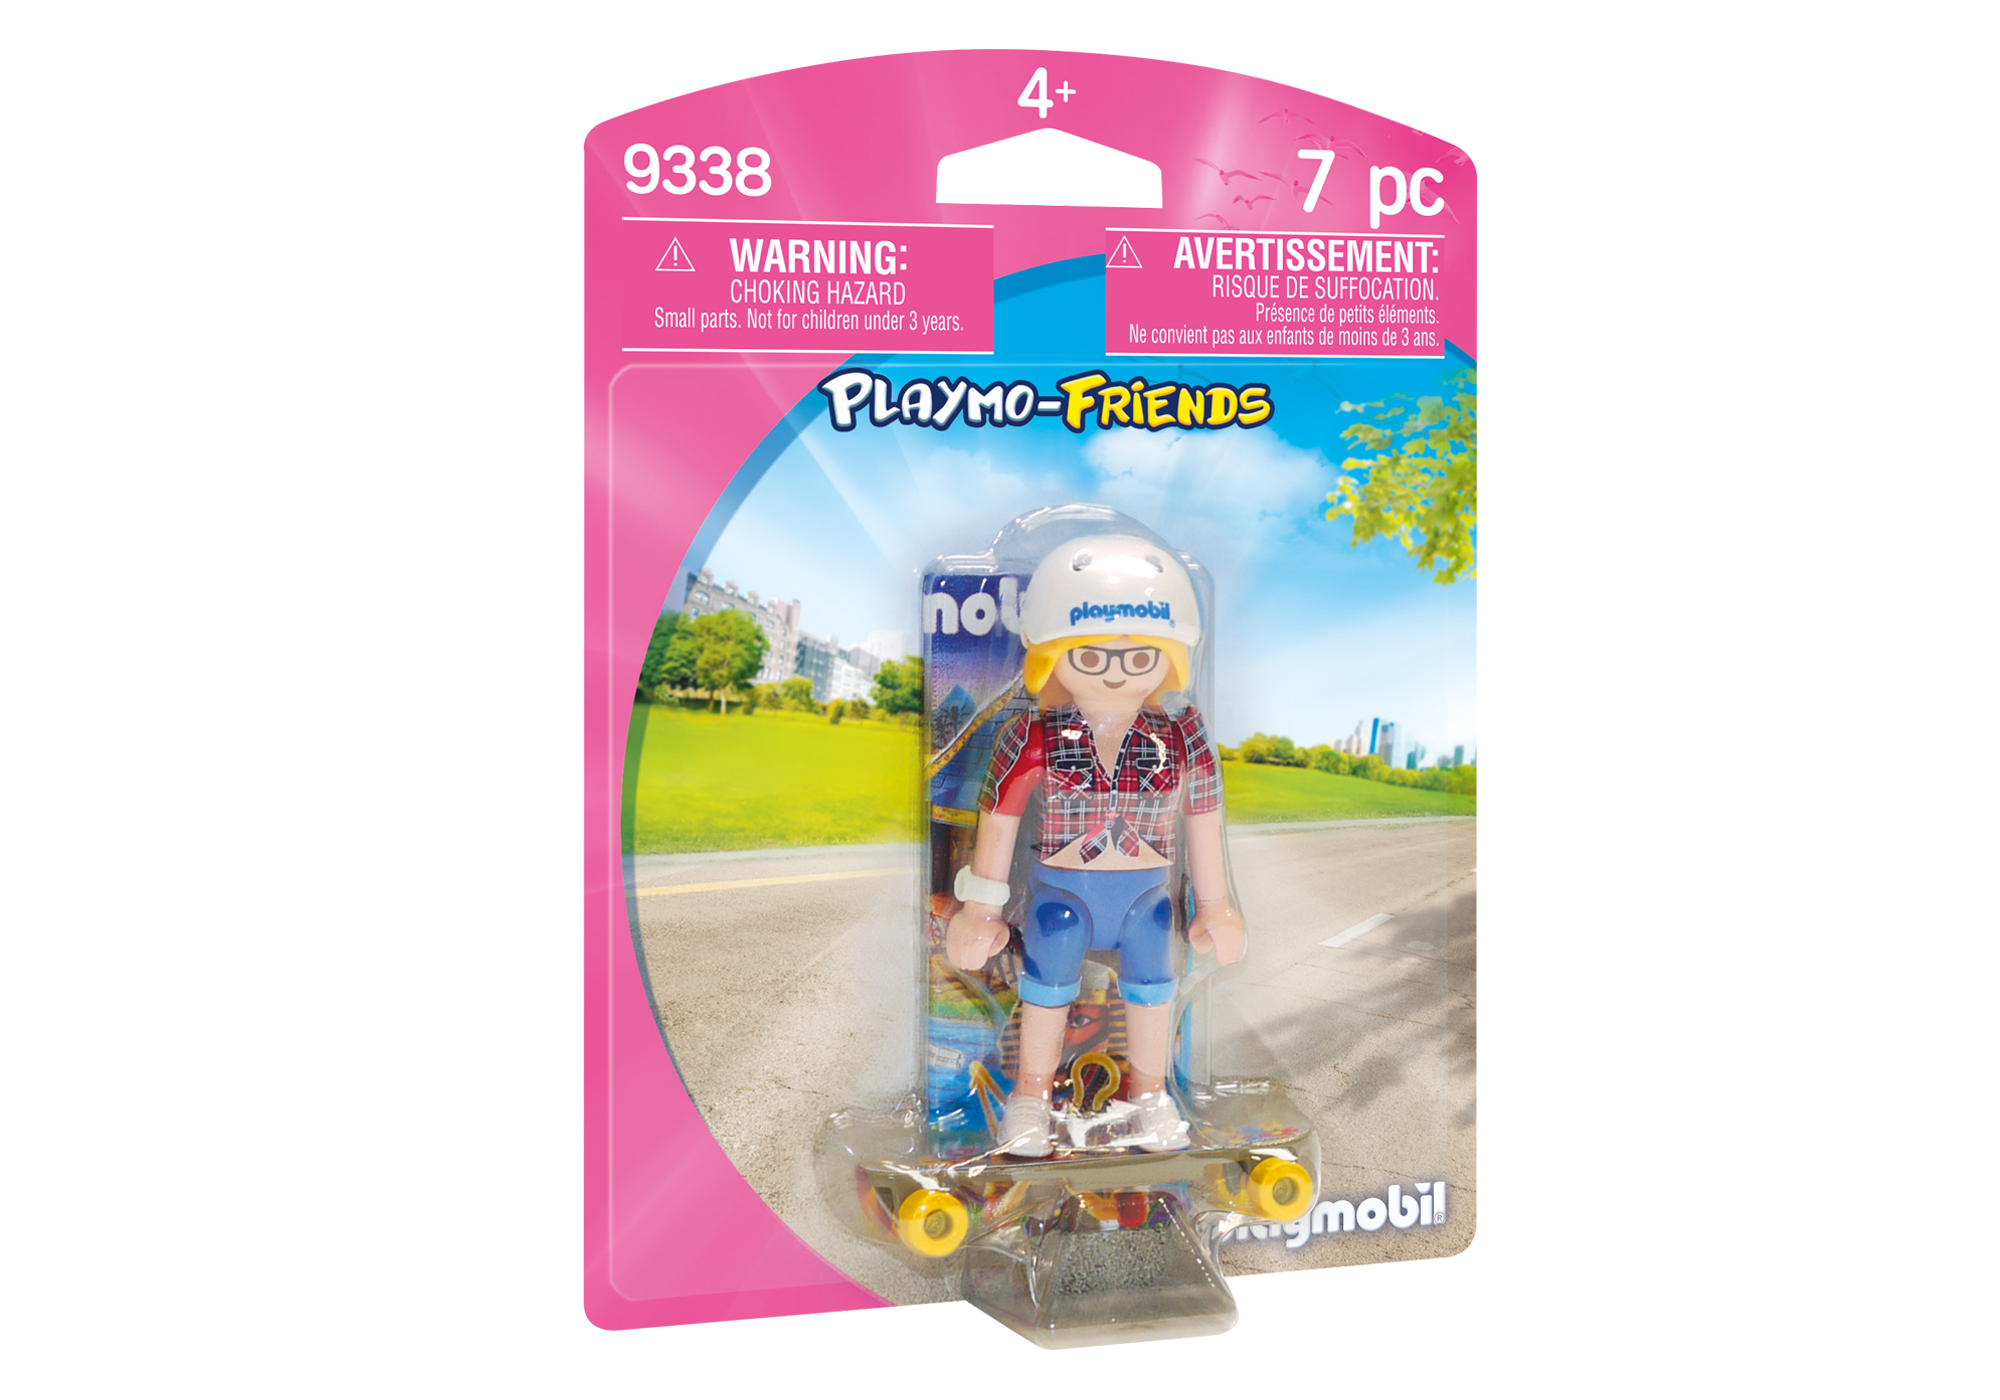 http://media.playmobil.com/i/playmobil/9338_product_box_front